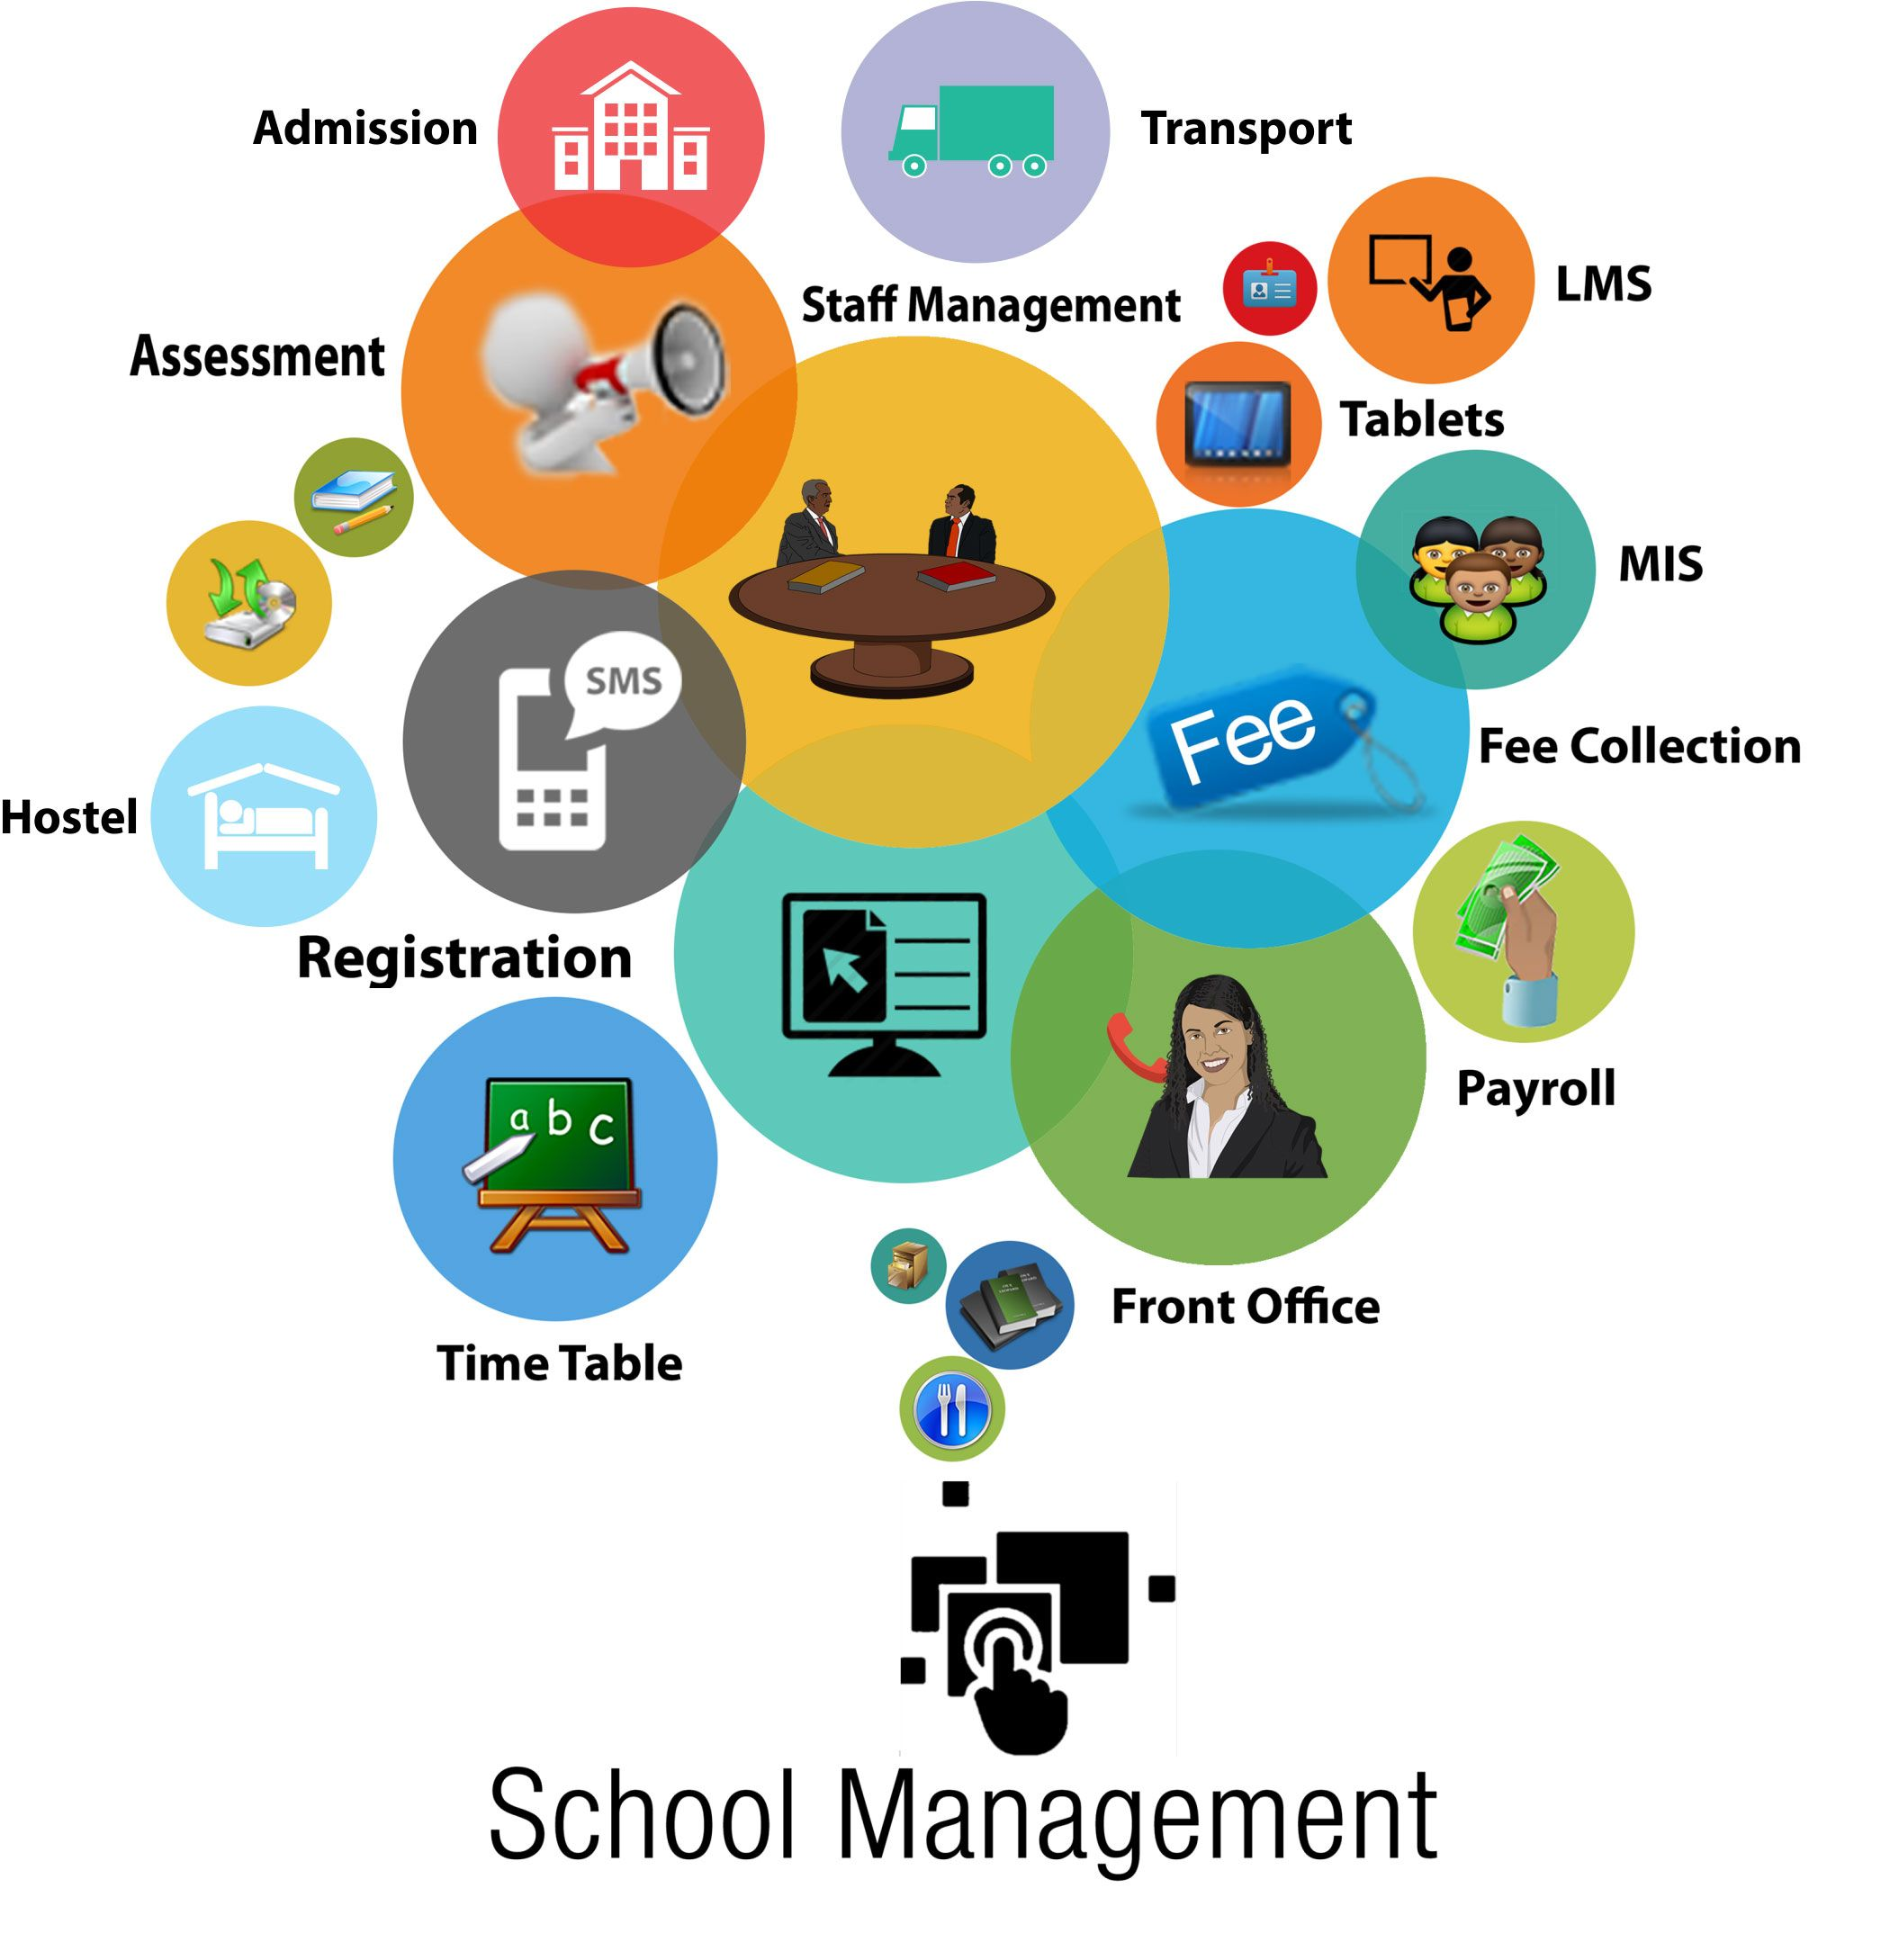 Are you looking for a school management system software